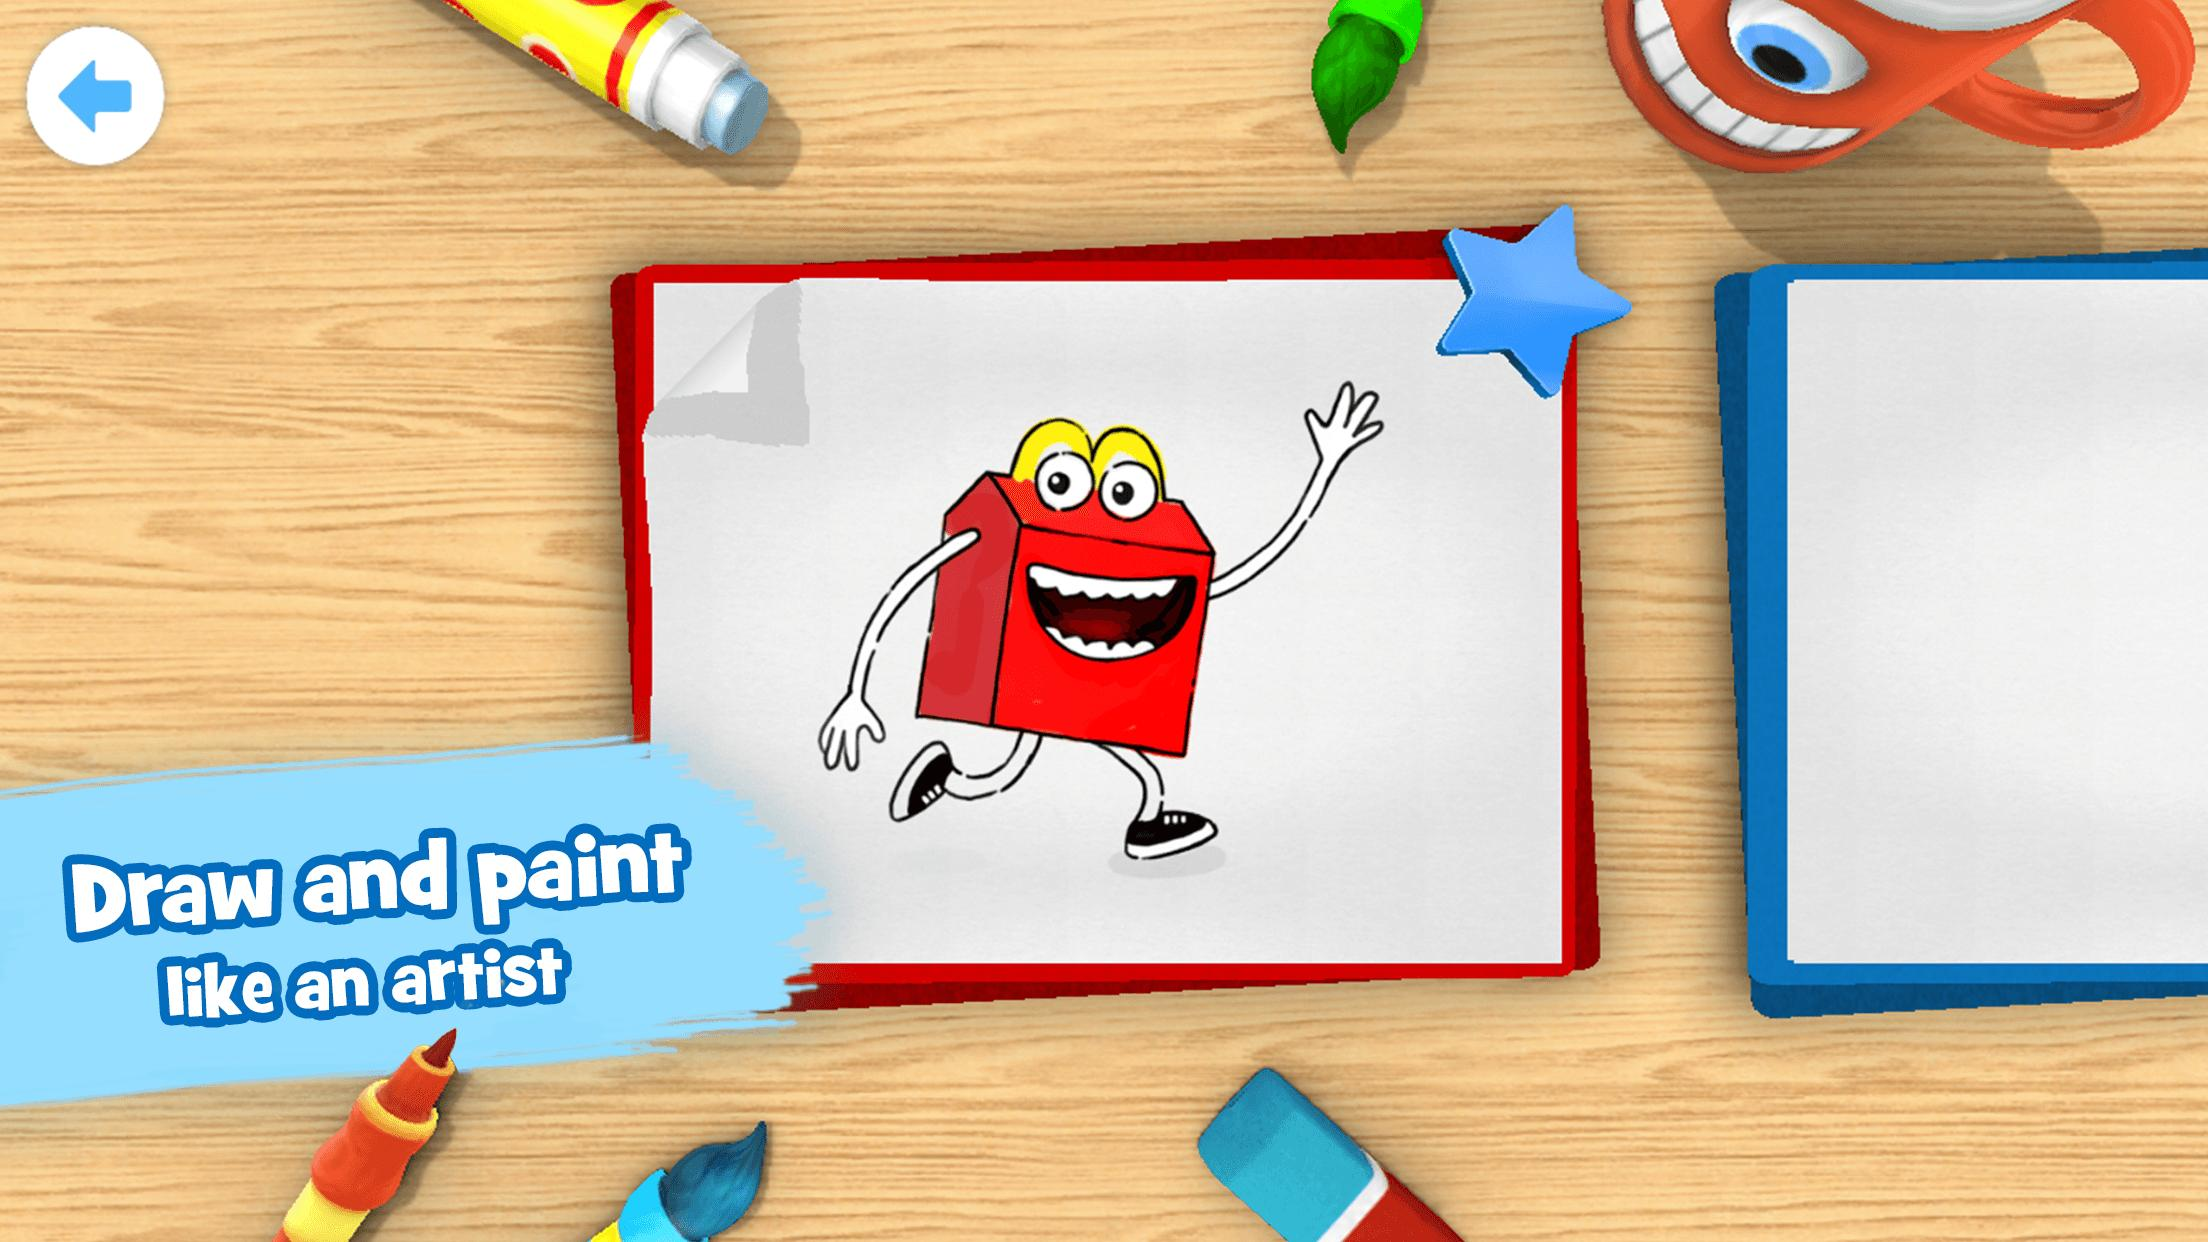 party android jam 3rd clay download